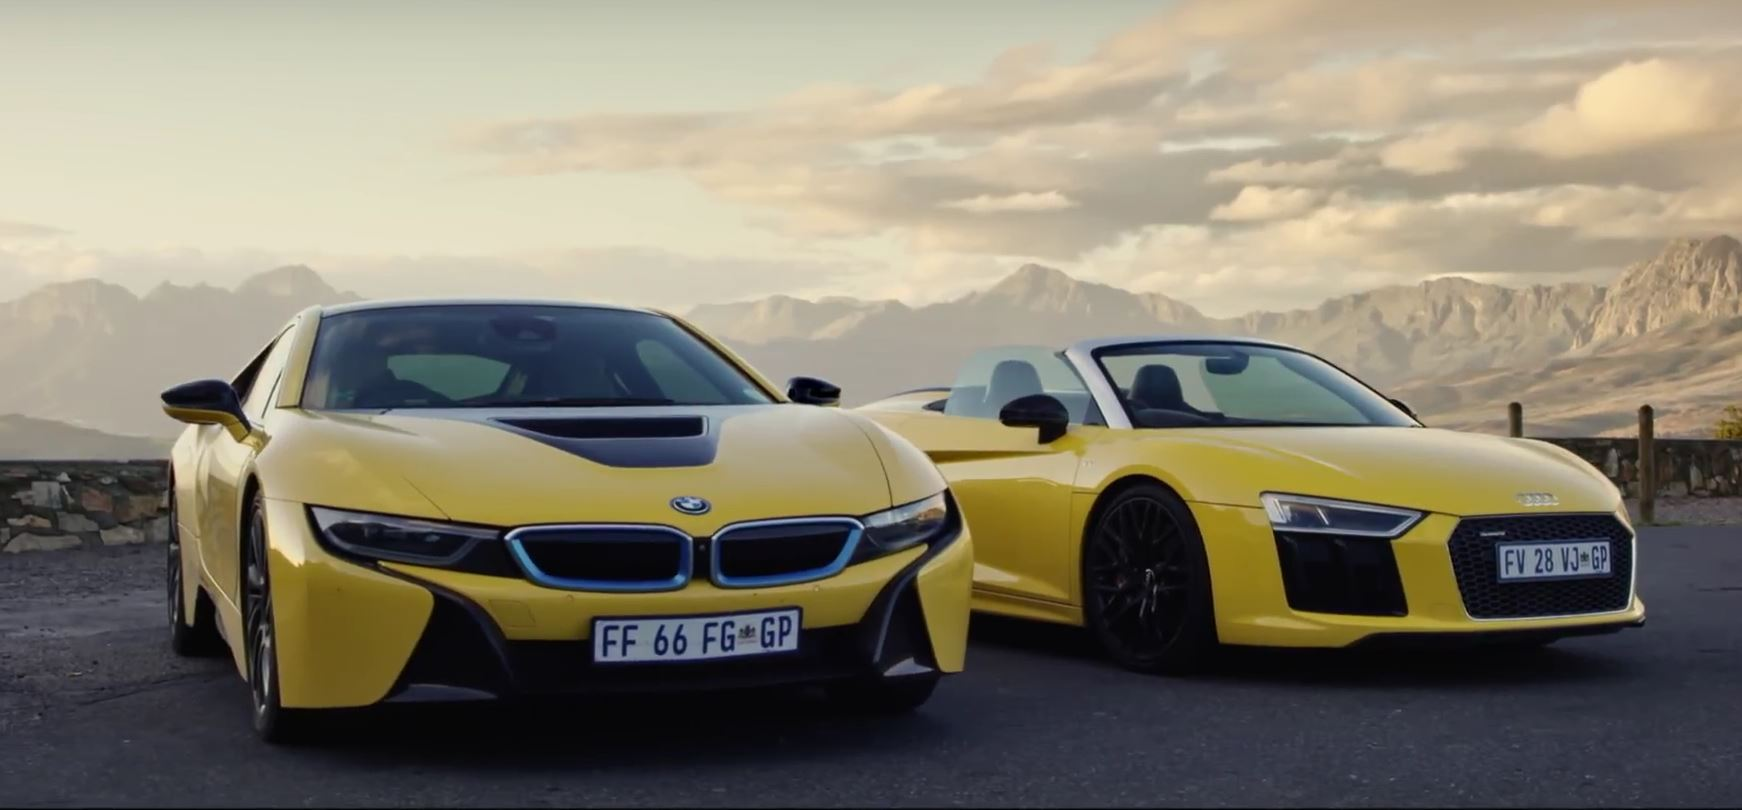 Bmw I8 Vs Audi R8 Spyder Two Different Supercars That